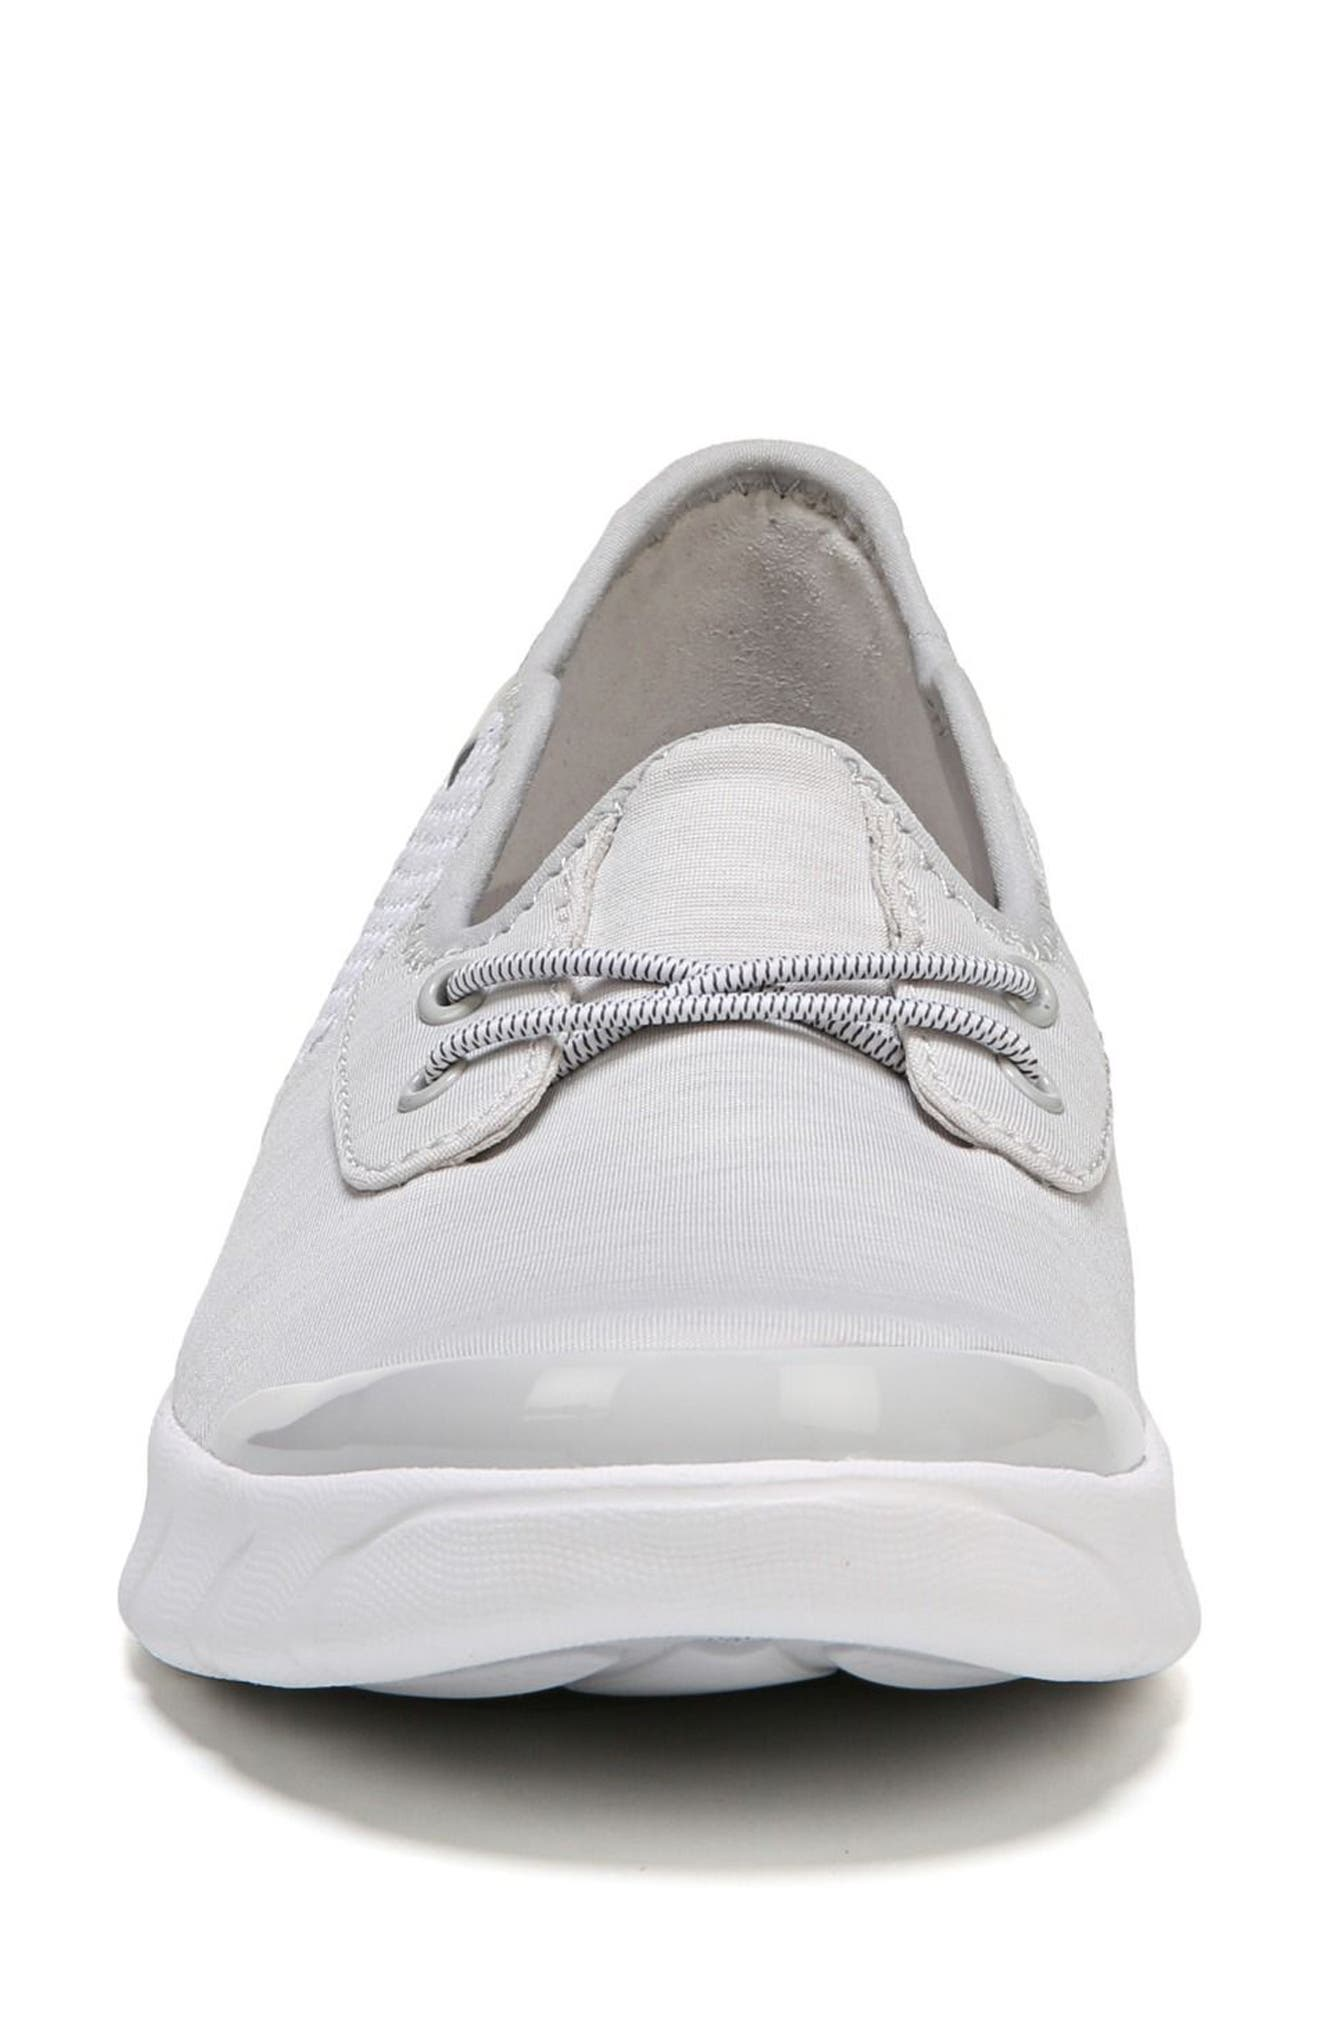 Oz Slip-On Sneaker,                             Alternate thumbnail 4, color,                             GREY FABRIC